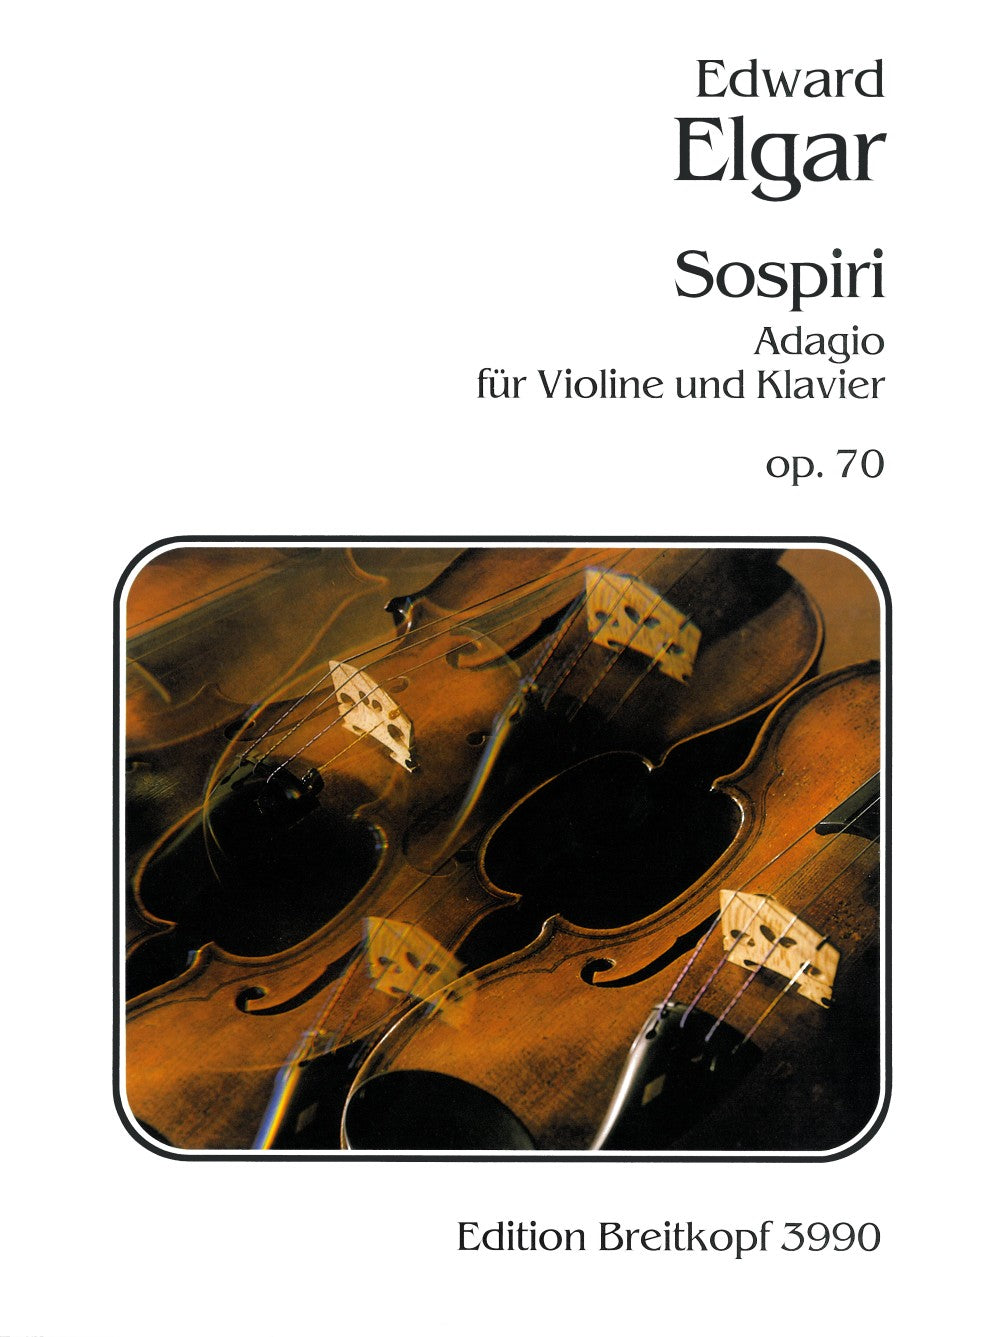 Elgar: Sospiri, Op. 70 (arr. for violin)